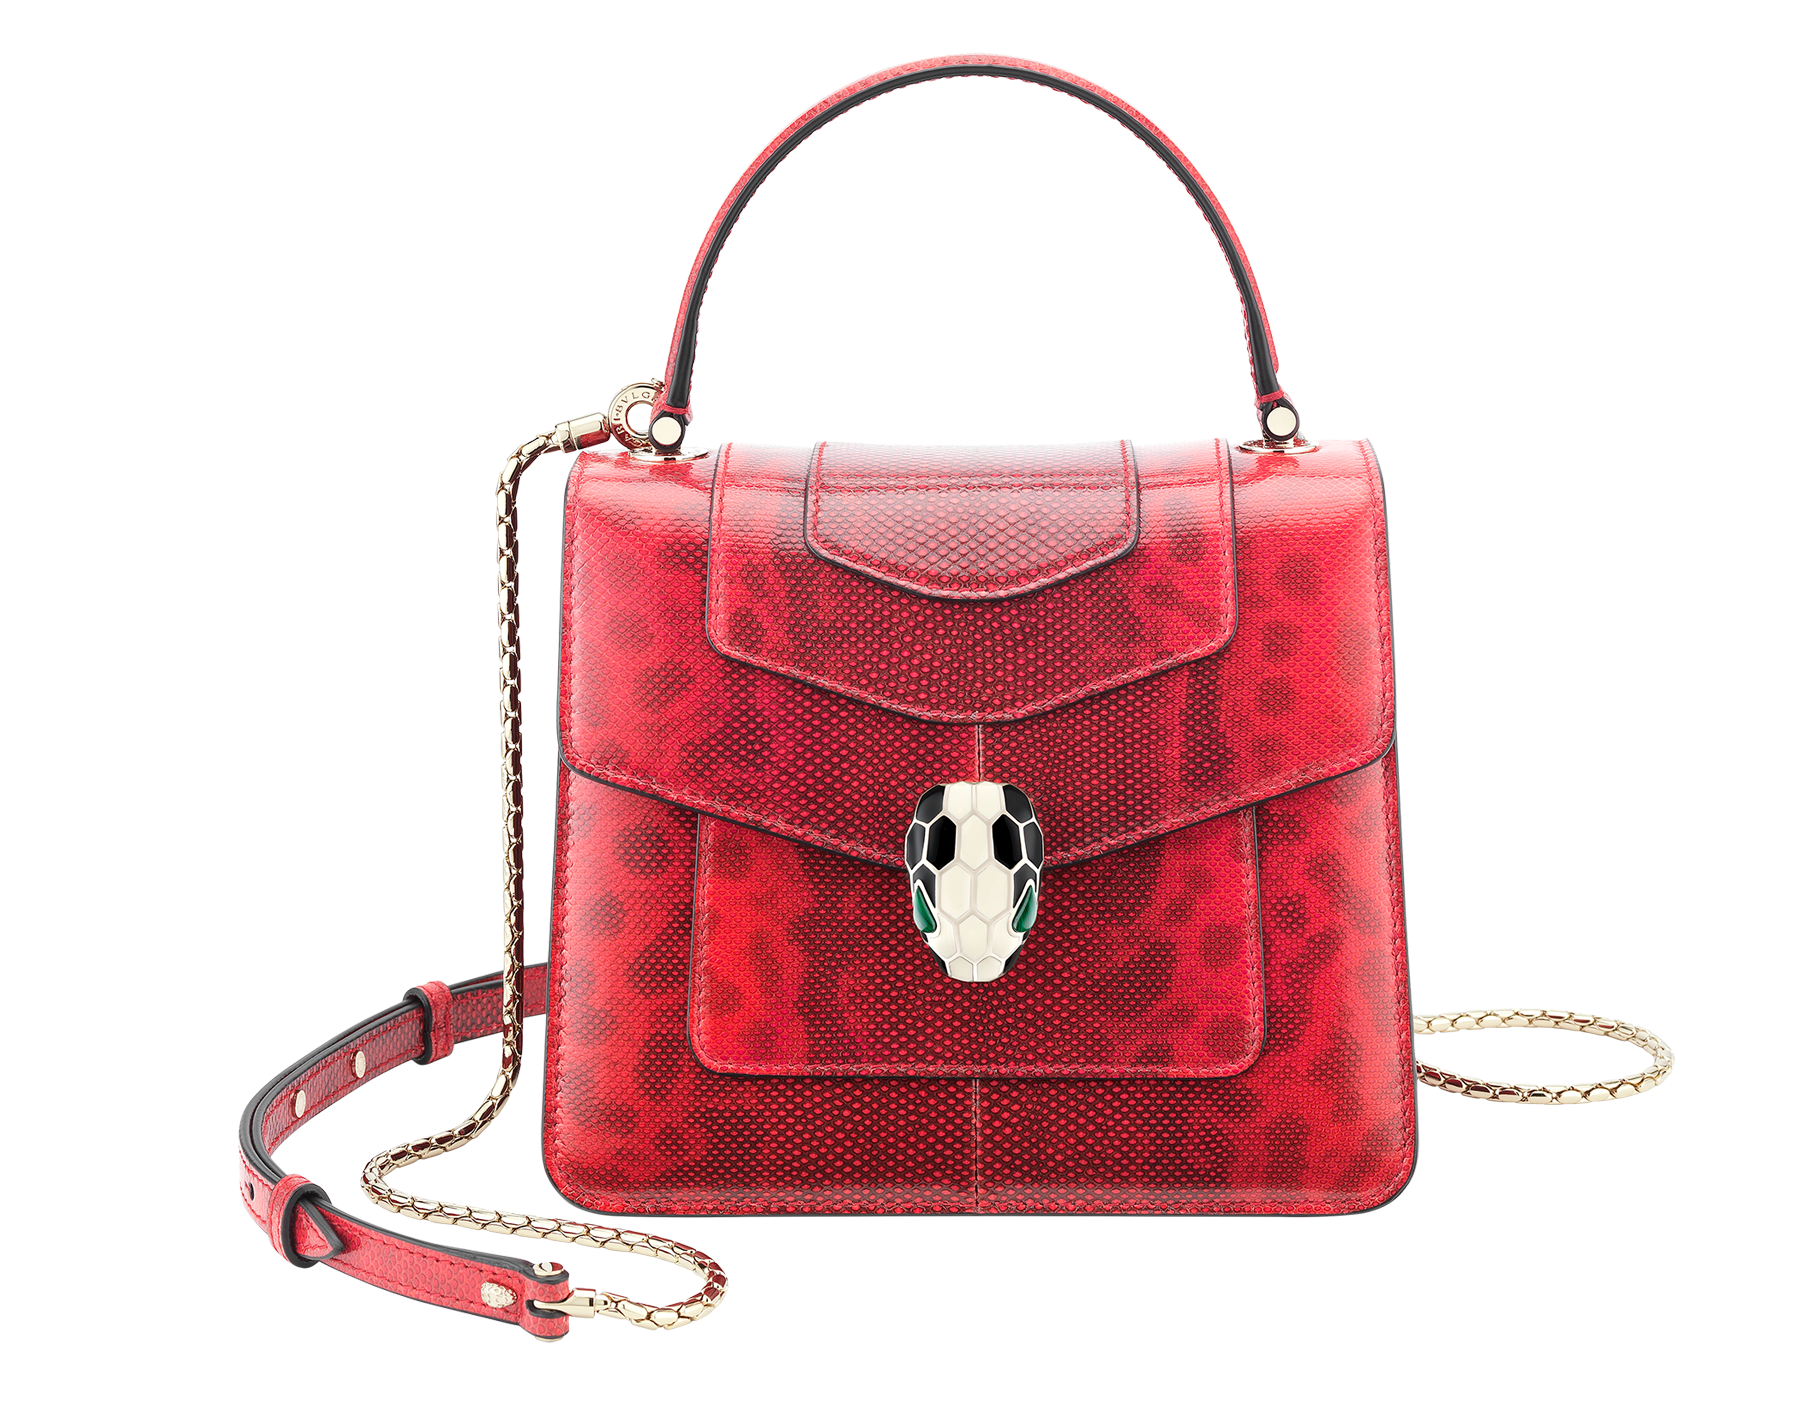 Serpenti Forever crossbody bag in sea star coral shiny karung skin. Snakehead closure in light gold plated brass decorated with black and white enamel, and green malachite eyes. 287915 image 1